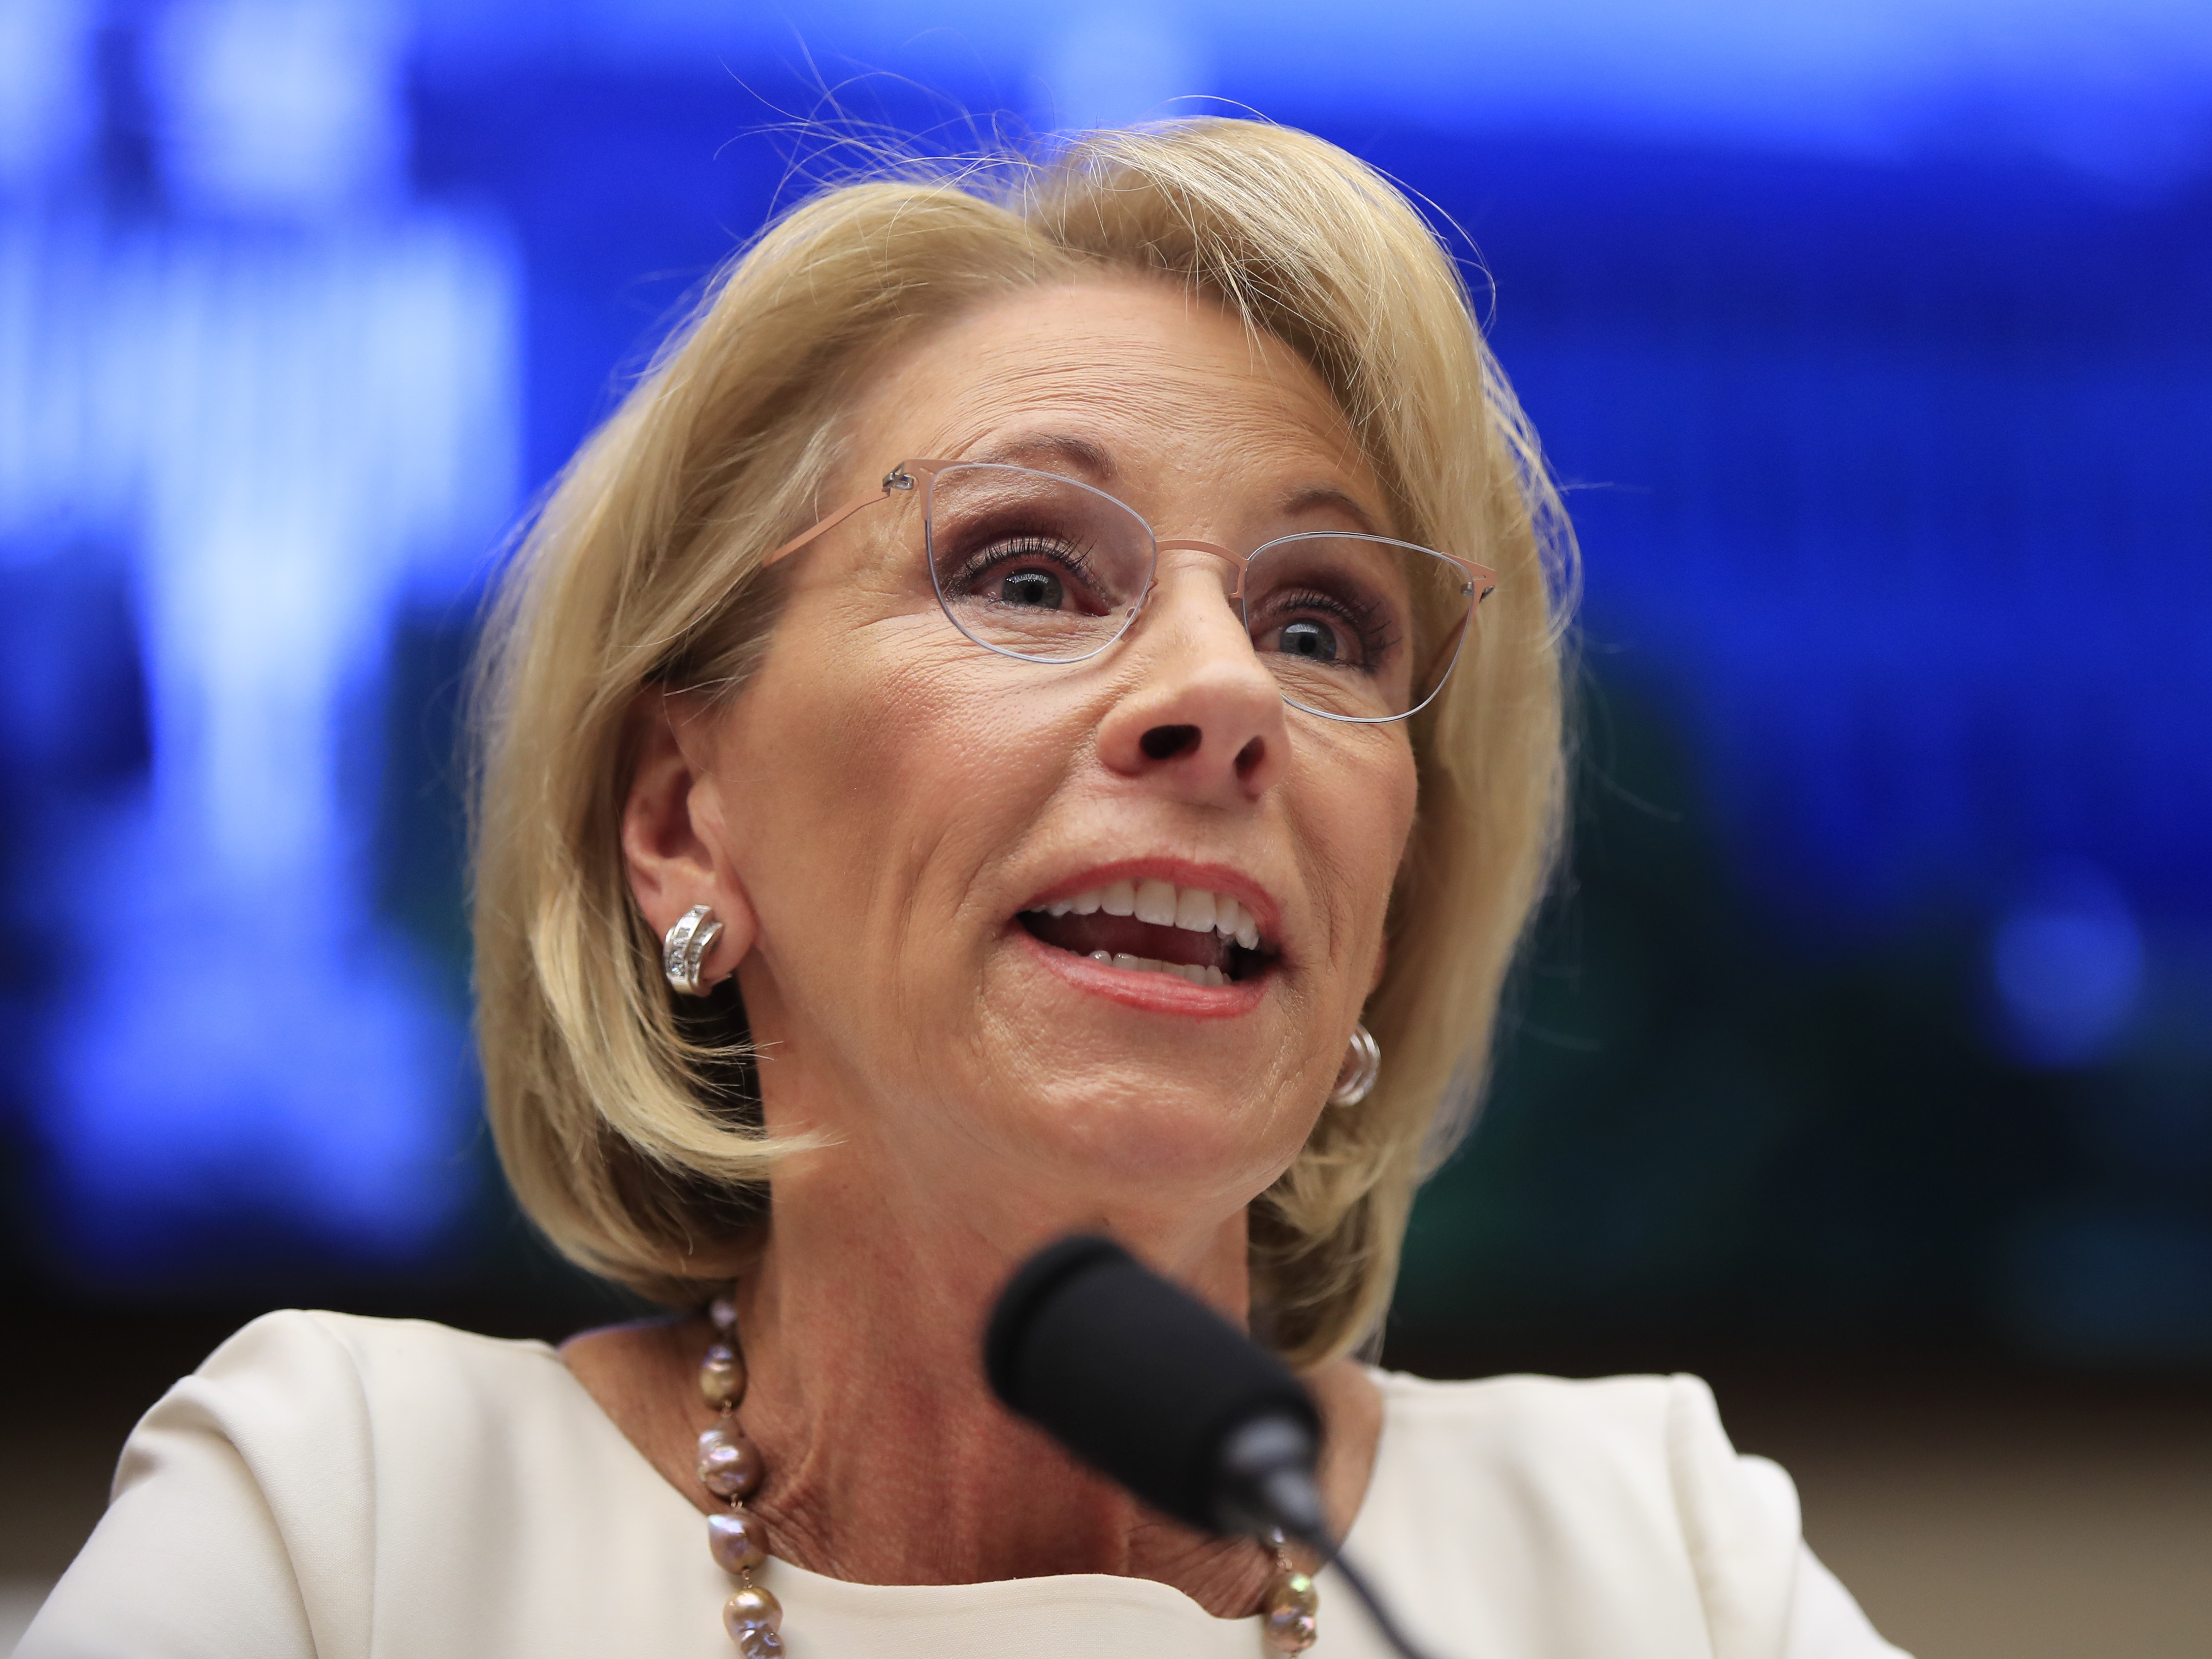 Democratic Bill Aims To Block Title IX Rule Changes Pushed By Trump Administration